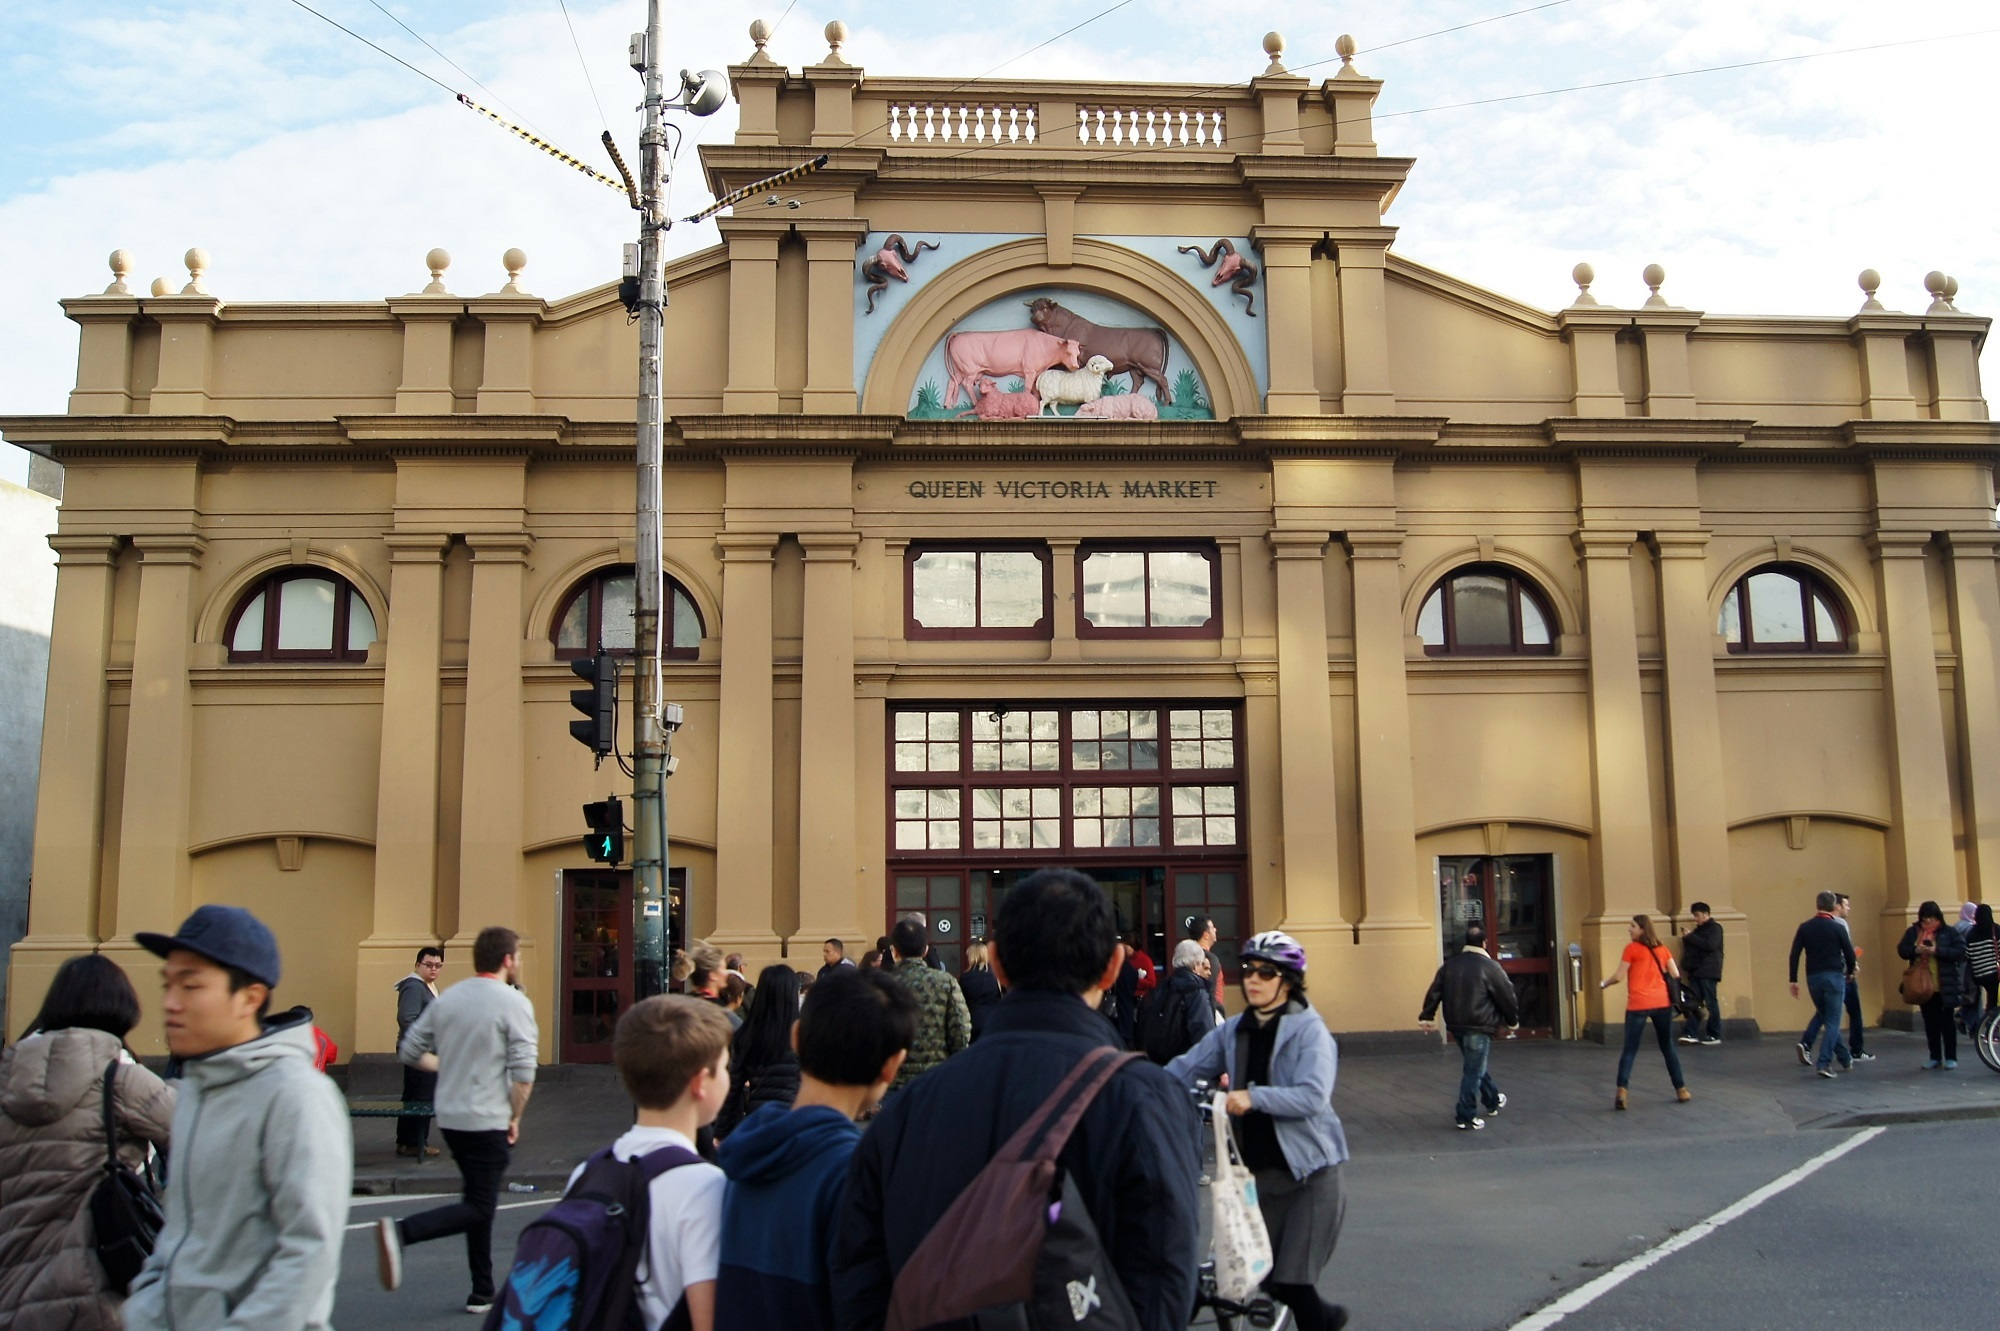 Queen Victoria Market and Carlton tour